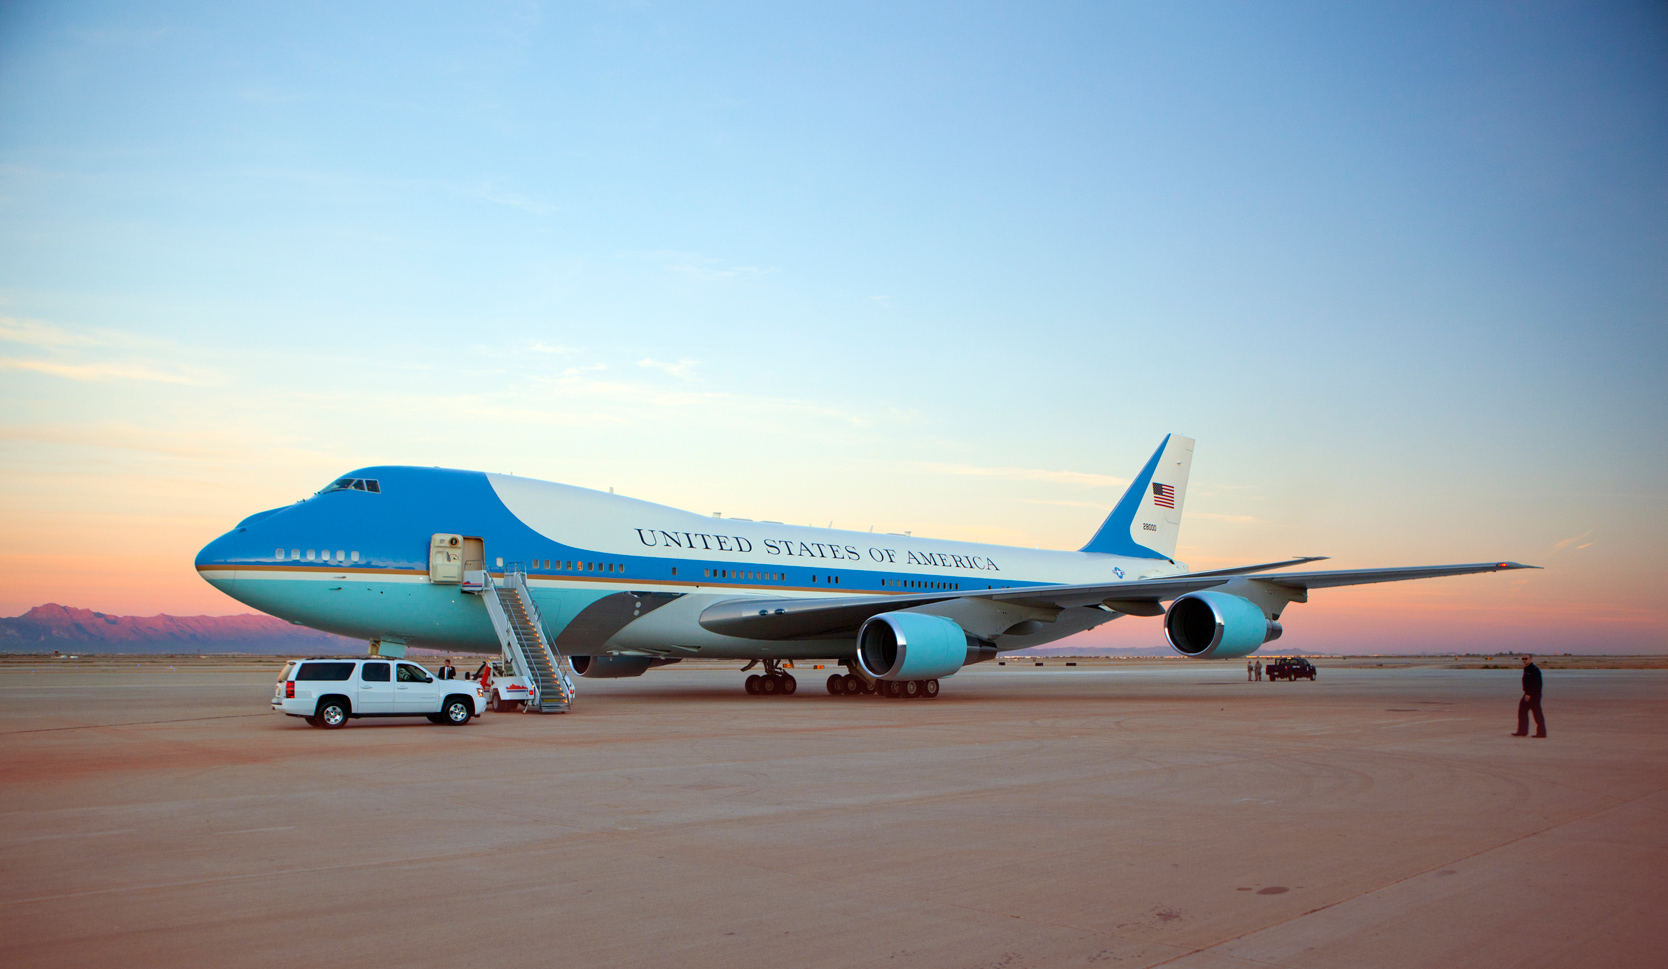 Air Force One – The Most Secure Aircraft in The World